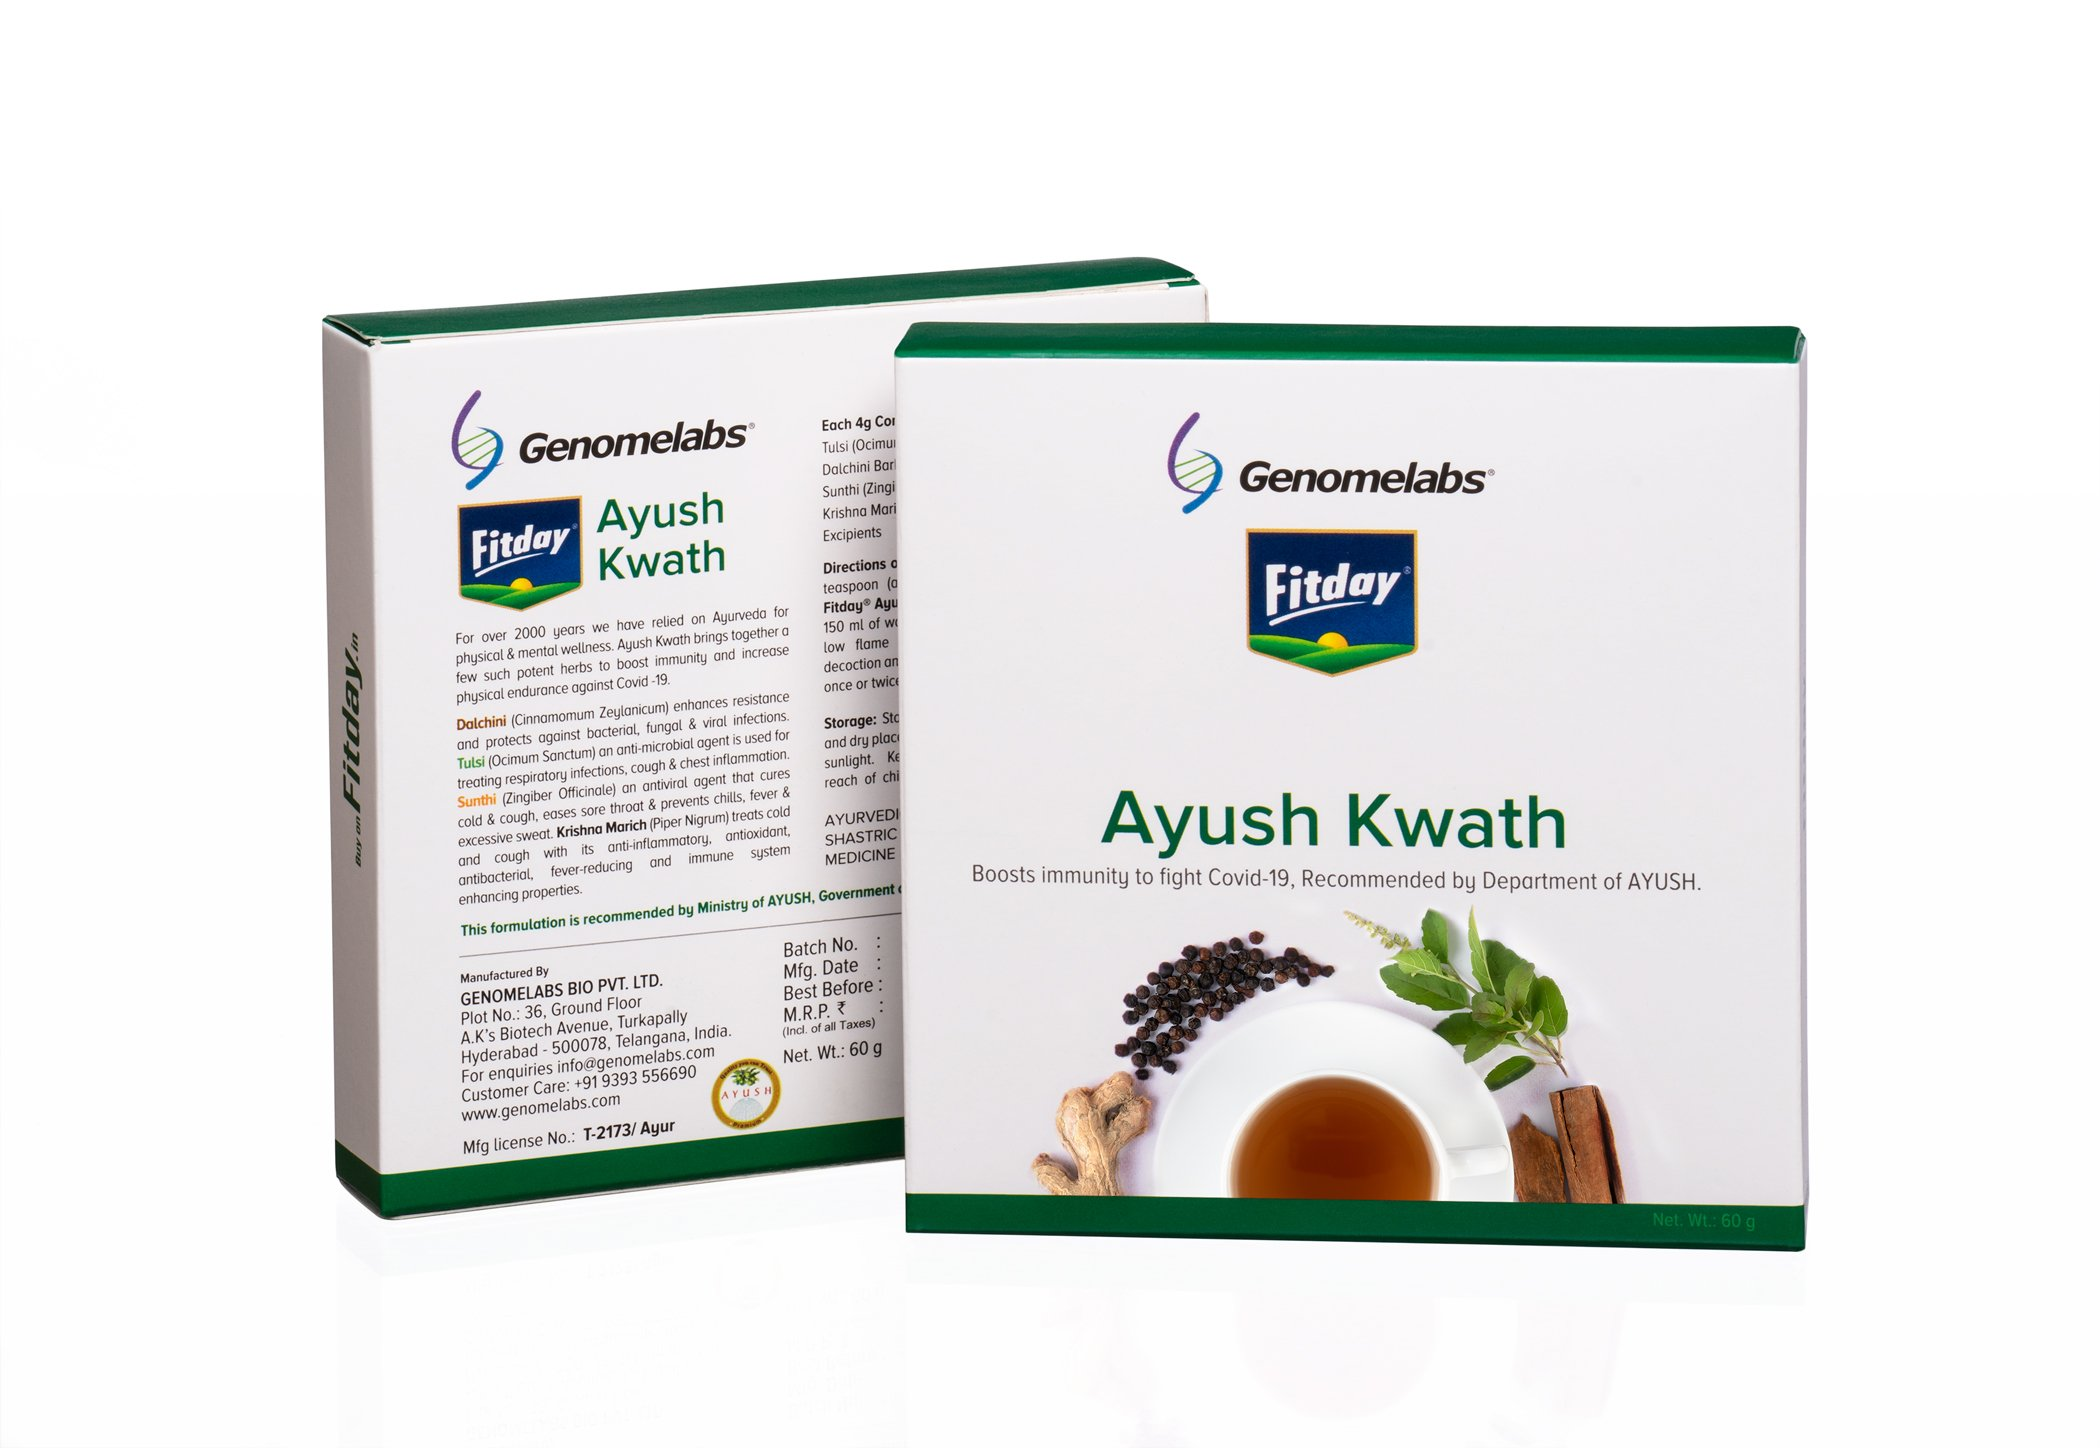 Fitday Ayush Kwath 60g Pack Of 3